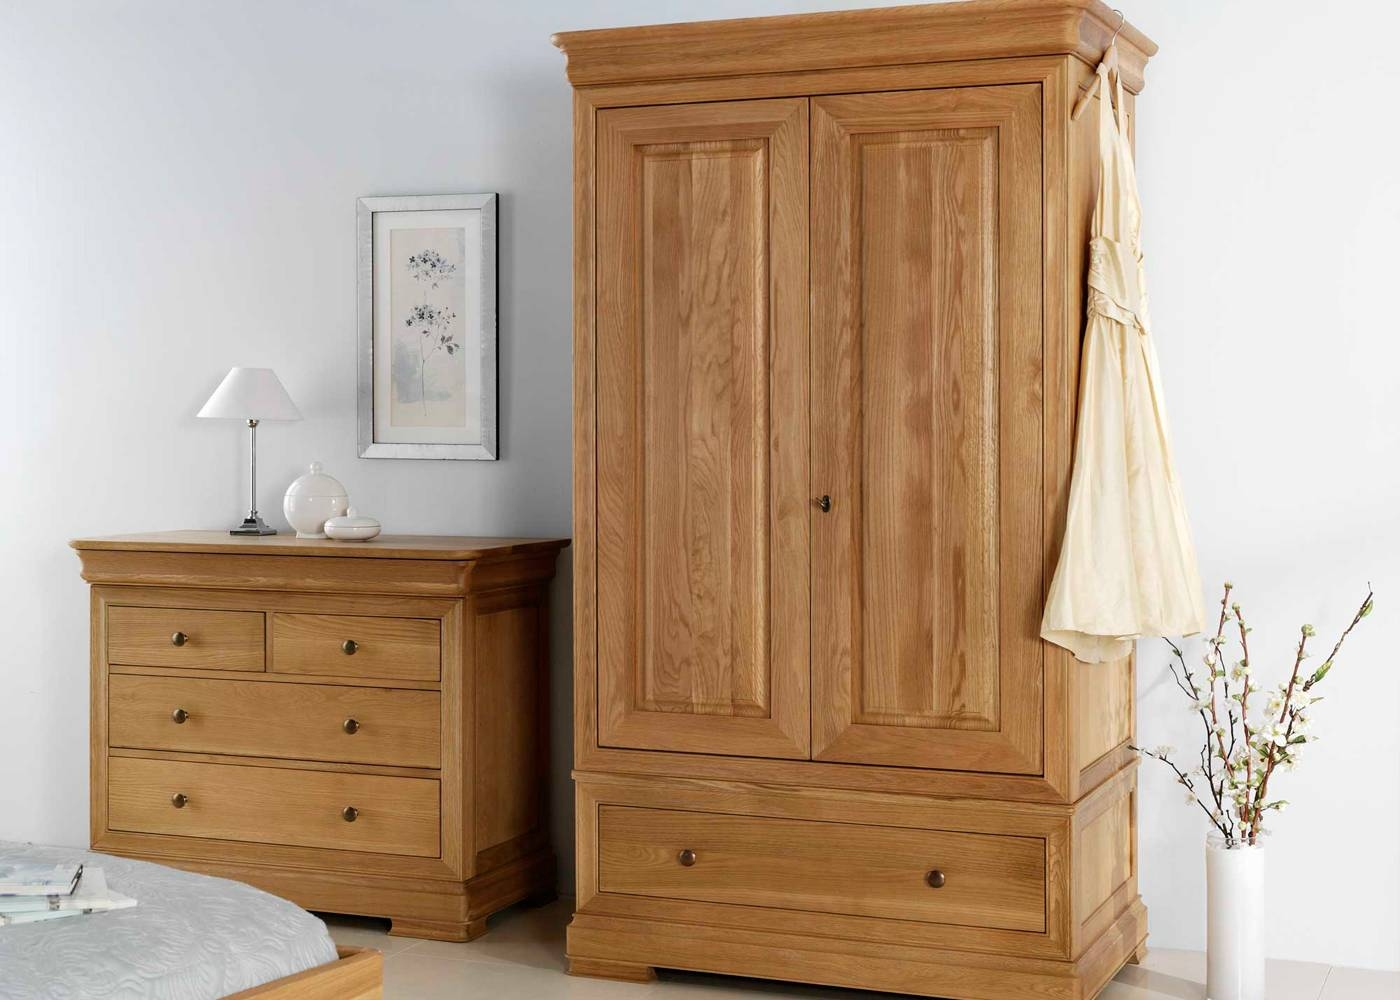 Willis & Gambier Lyon Double Wardrobe – Midfurn Furniture Superstore Within Willis And Gambier Wardrobes (View 15 of 15)